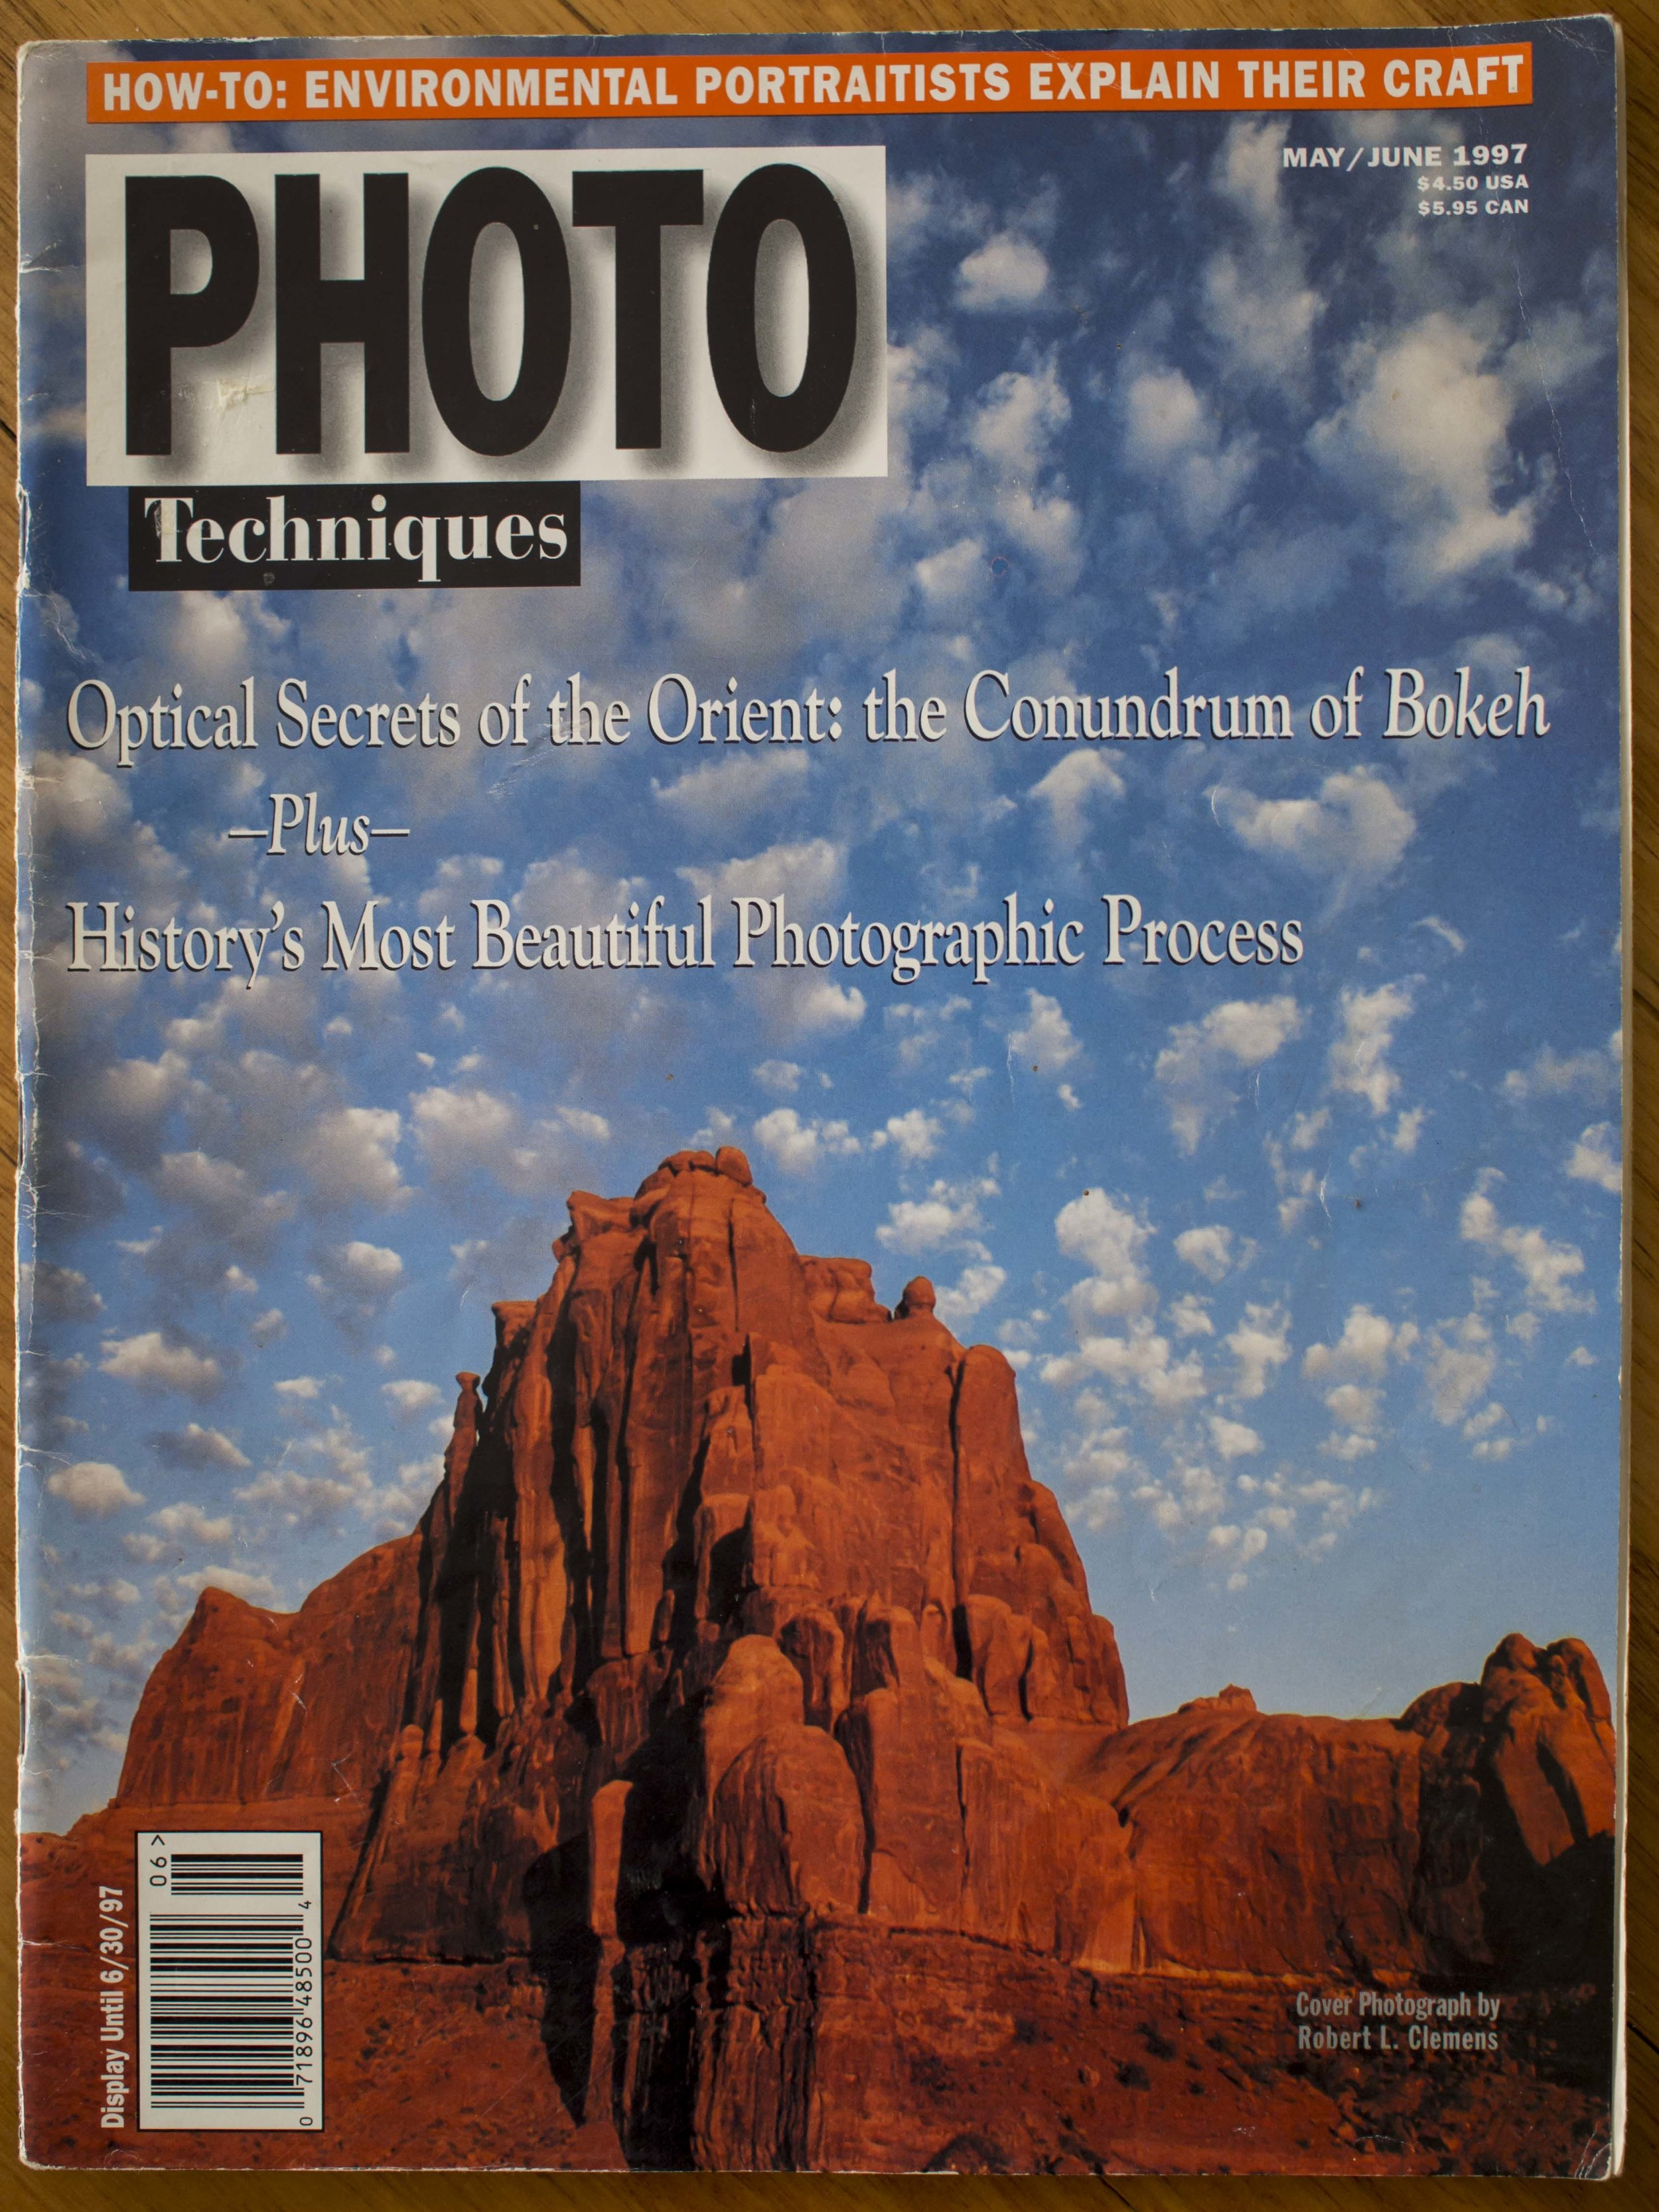 Unassuming, classy and modest, this periodical was an automatic buy for me along with Camera and Darkroom, mostly for the articles about photographers current and retrospective or advanced technique as well as the dry wisdom of David Vestal. Pretty good condition considering. I still have a hoard of 50 or so mags from this era, as they are far too precious to me to toss. It is amazing how relevant they still are.